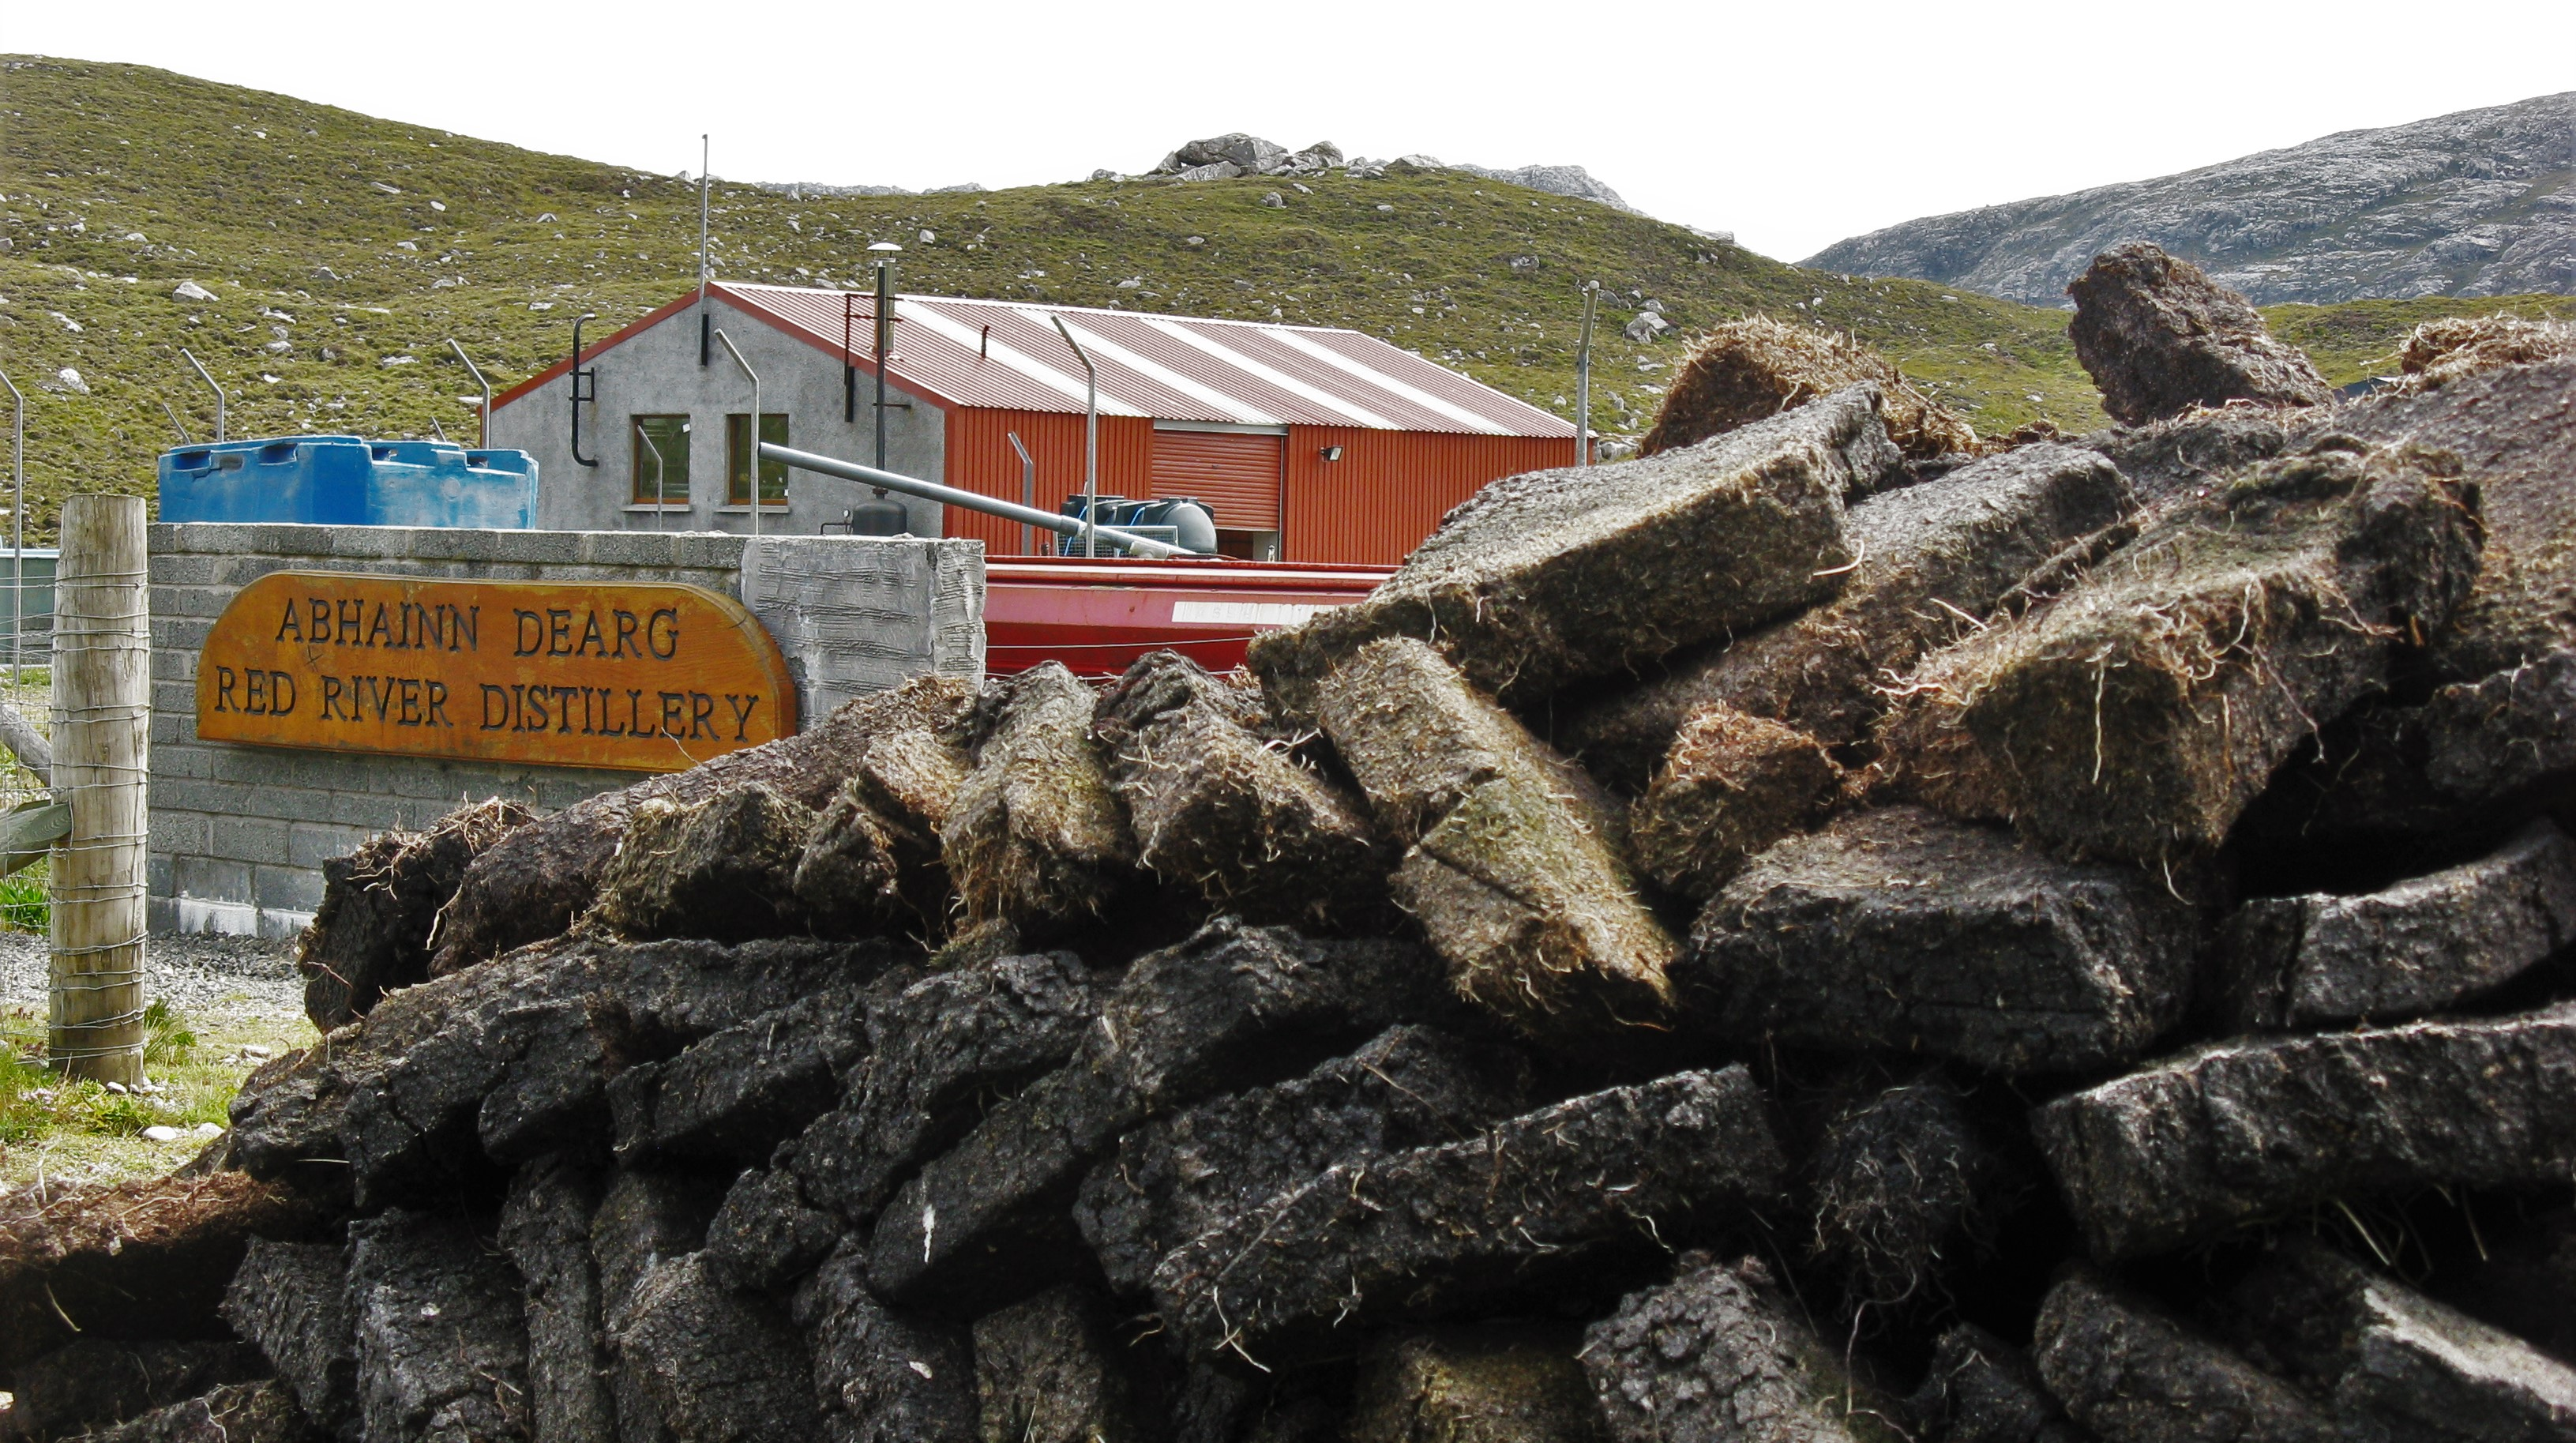 Abhainn Dearg distillery on the Isle of Lewis